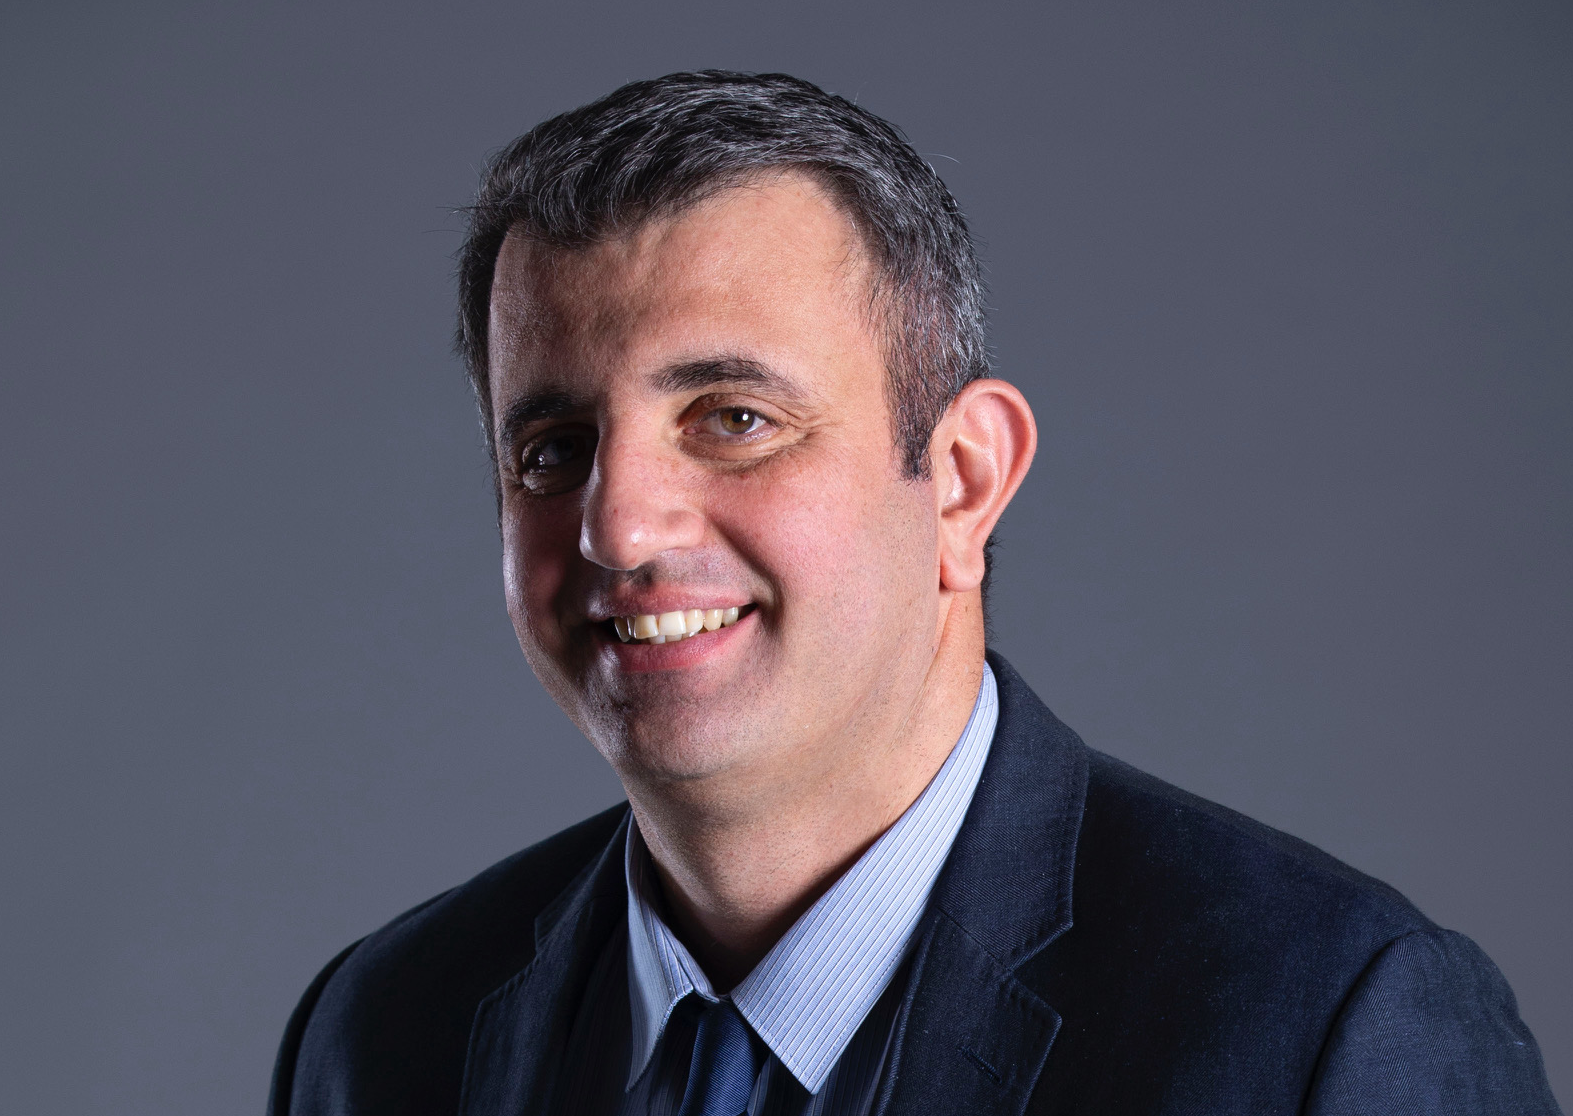 Headshot of Pavlos Savvidis